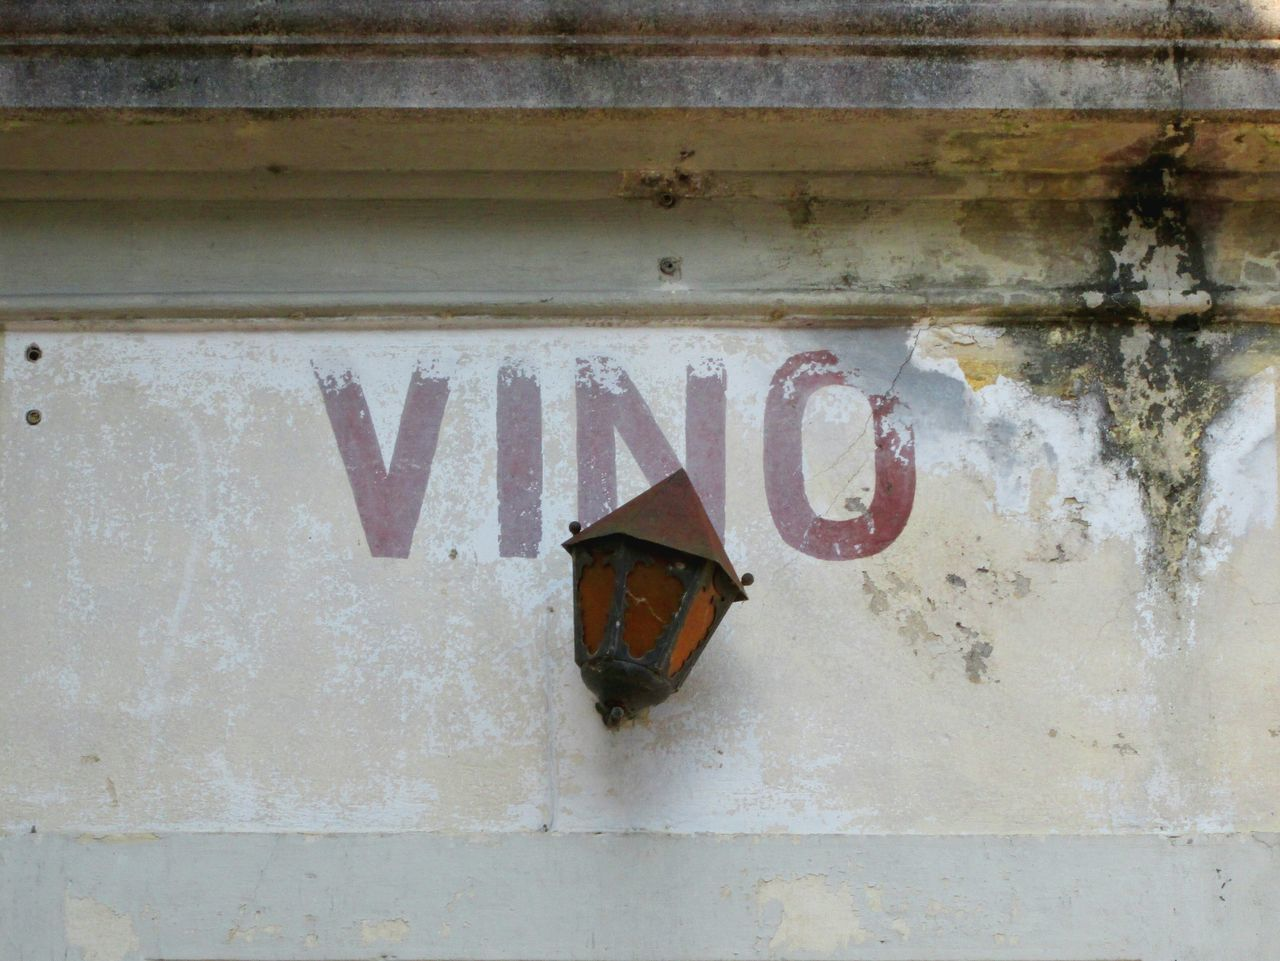 Wine Sign Italian Vino Sign Lantern Mold Mould Cracked Wall Weathered Wall Scratched Plaster Old Signs Concrete Wall Multicolors